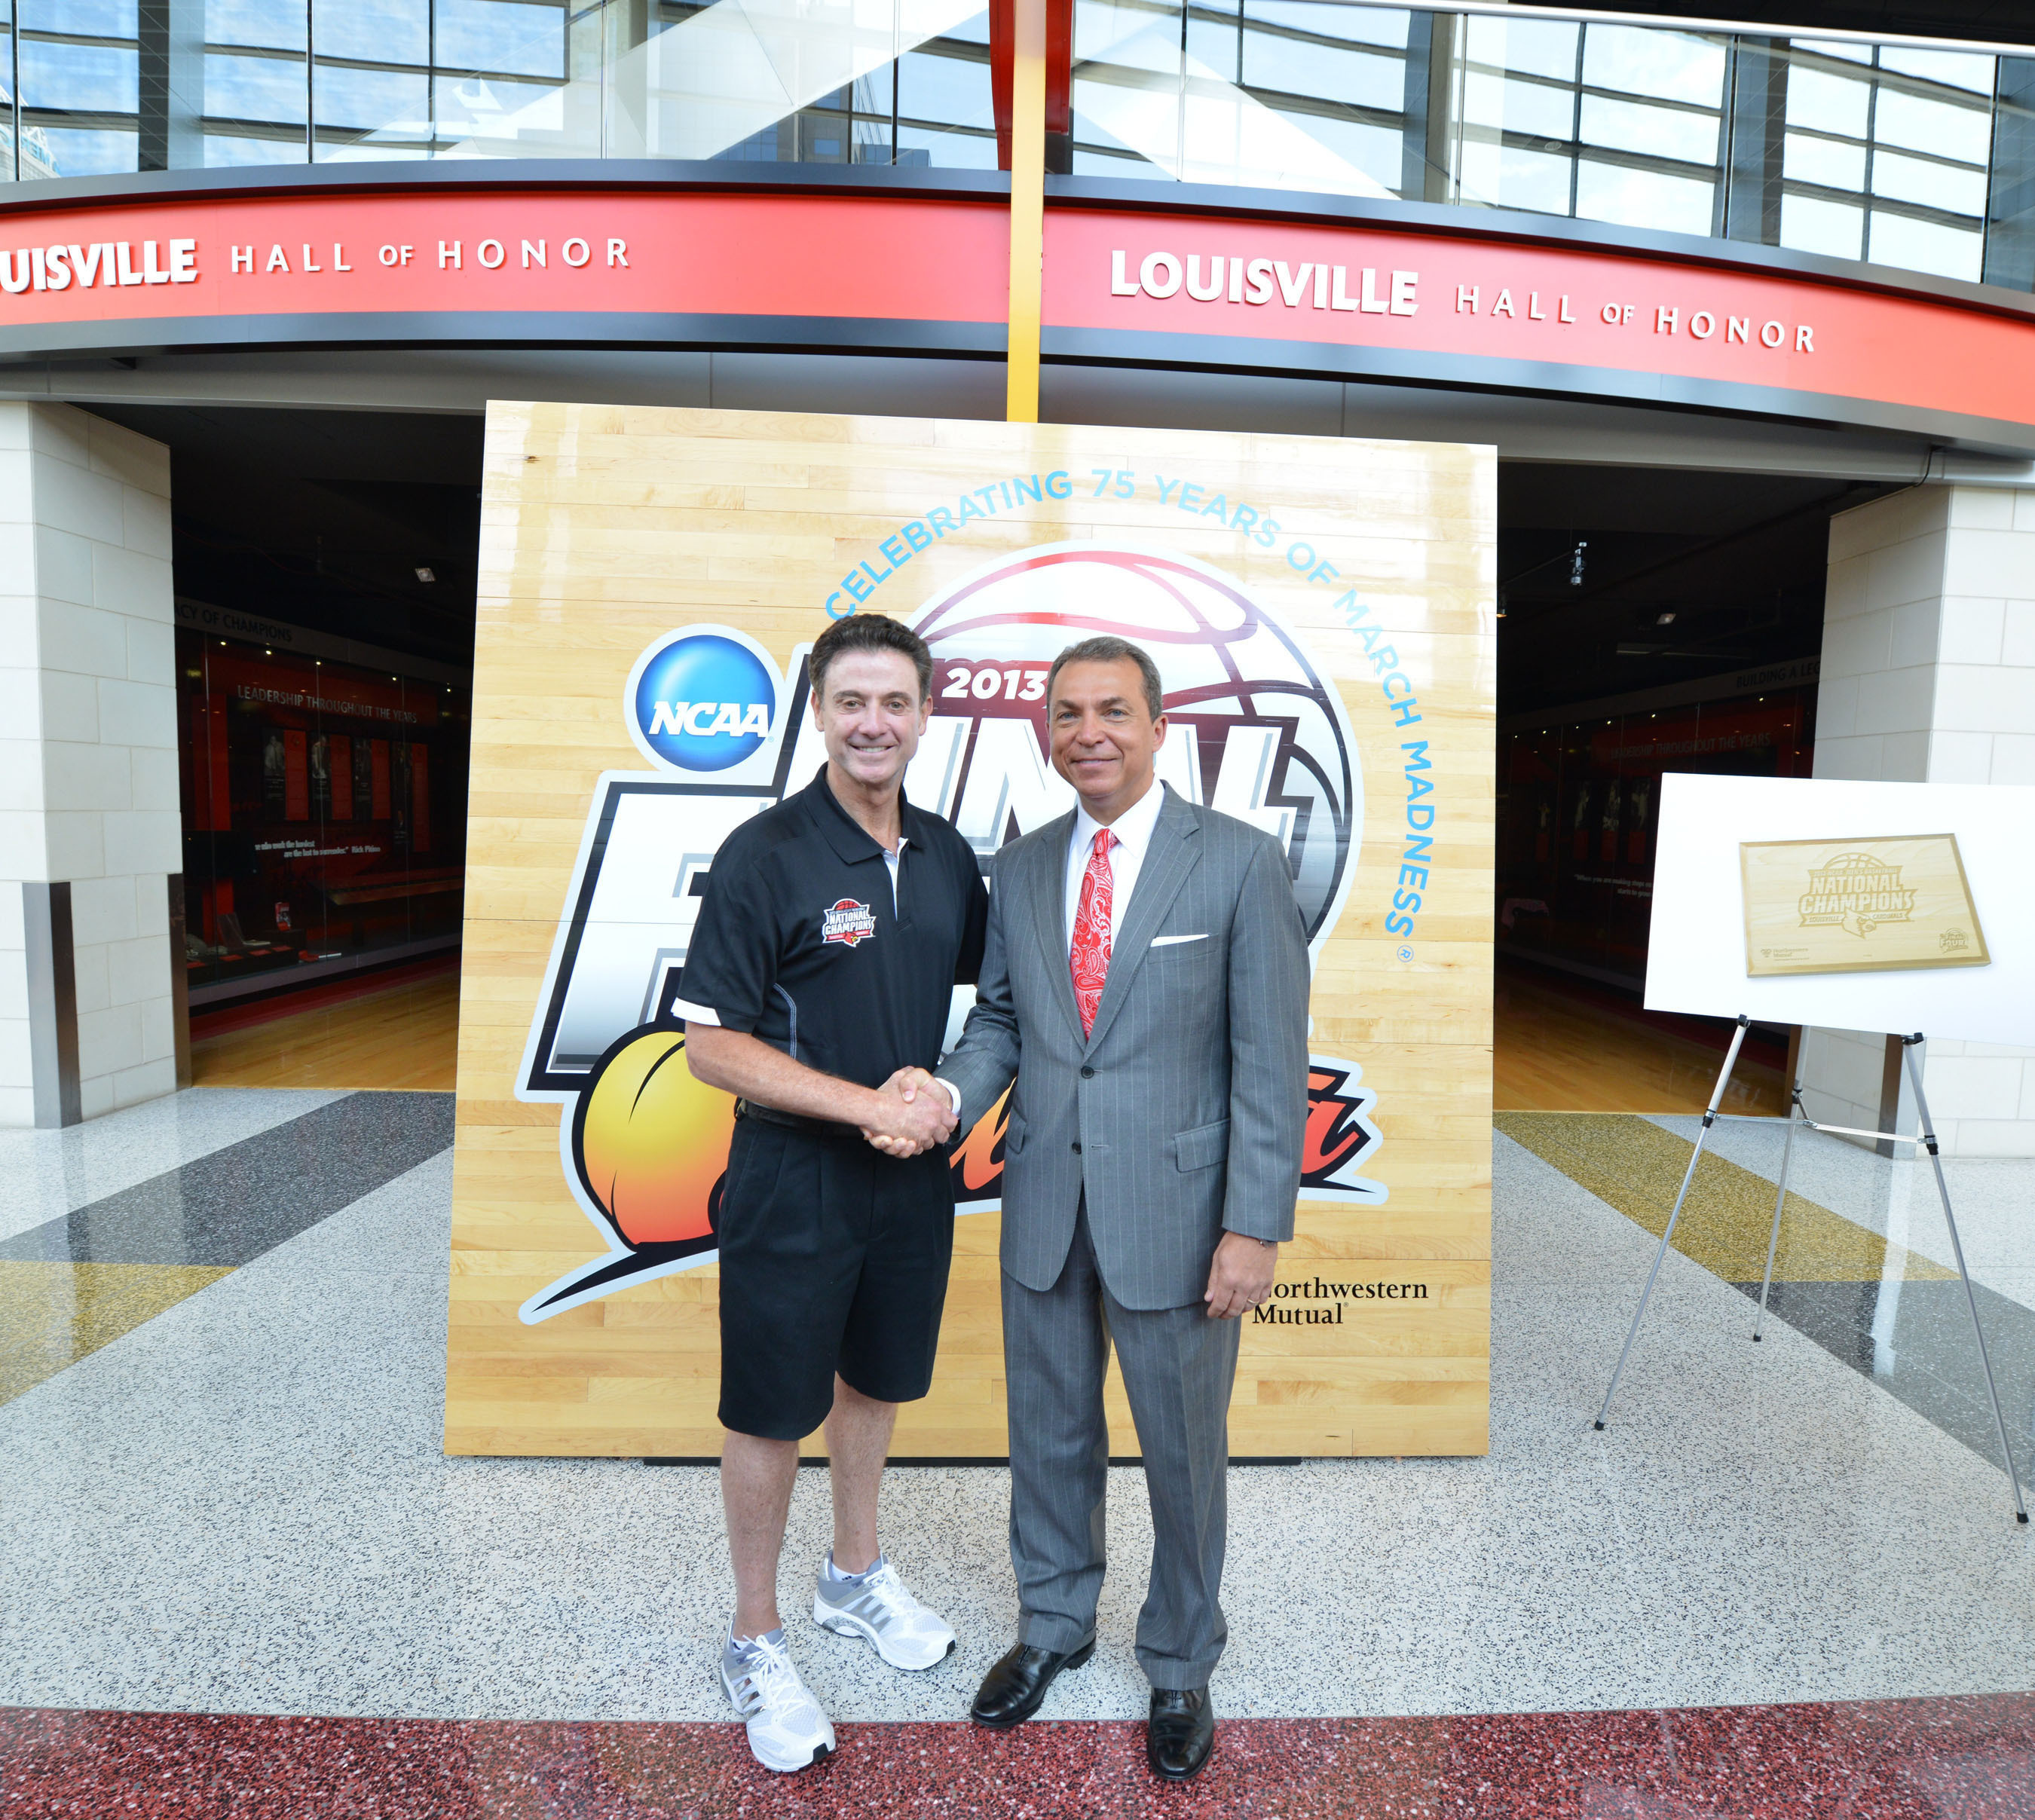 University of Louisville Head Coach Rick Pitino (left) stands in front of a replica of the 2013 NCAA Championship Floor with Northwestern Mutual's Dan Rivers (right).  (PRNewsFoto/Northwestern Mutual)